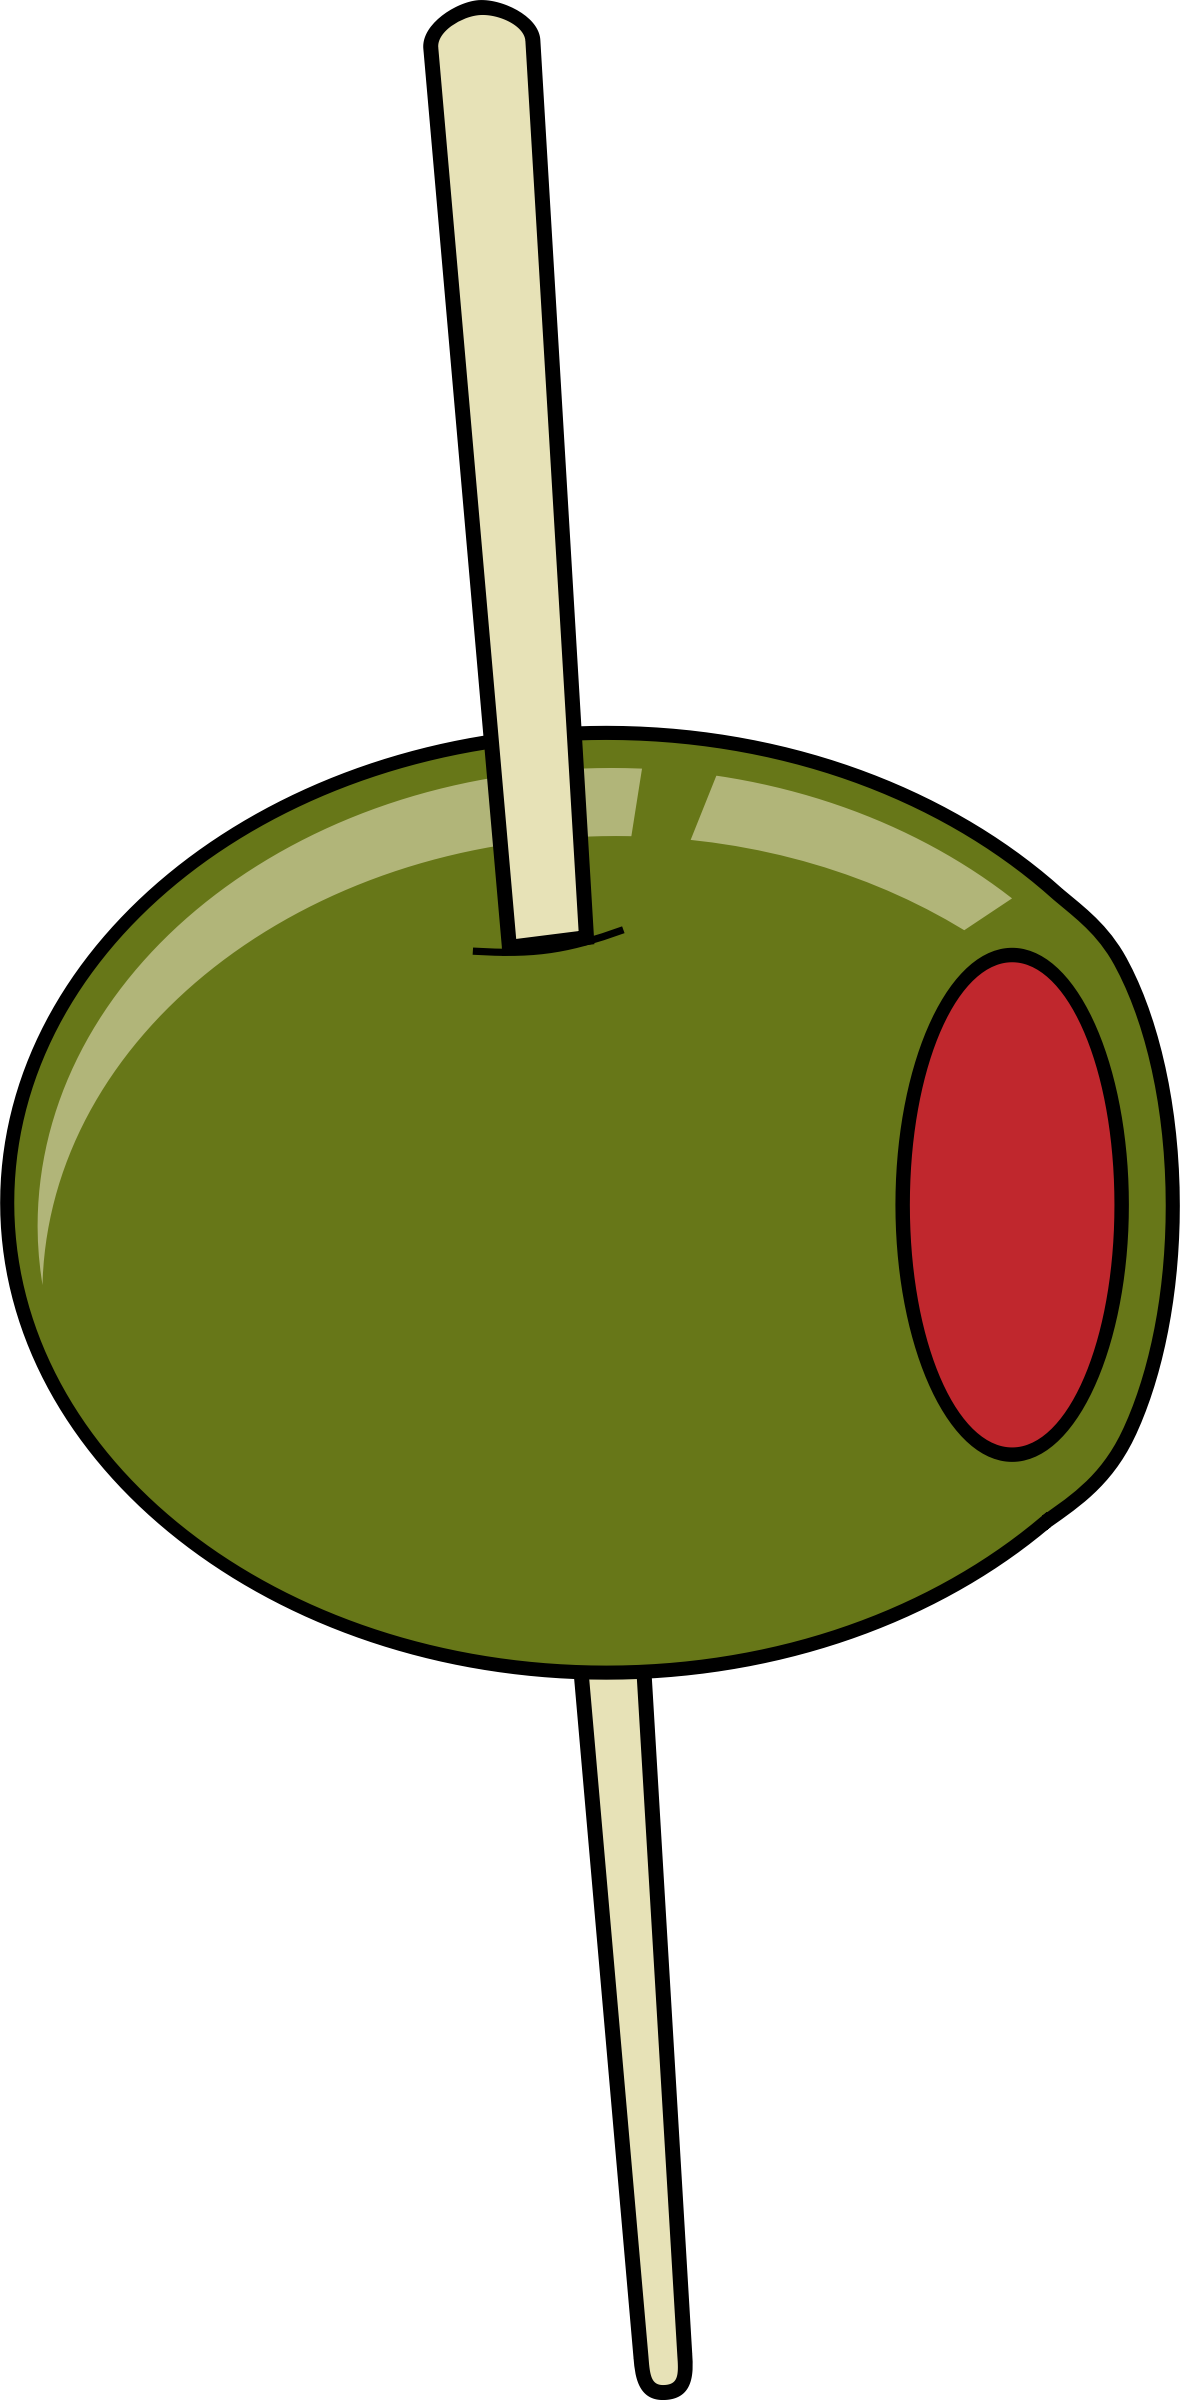 1521 Olive free clipart.